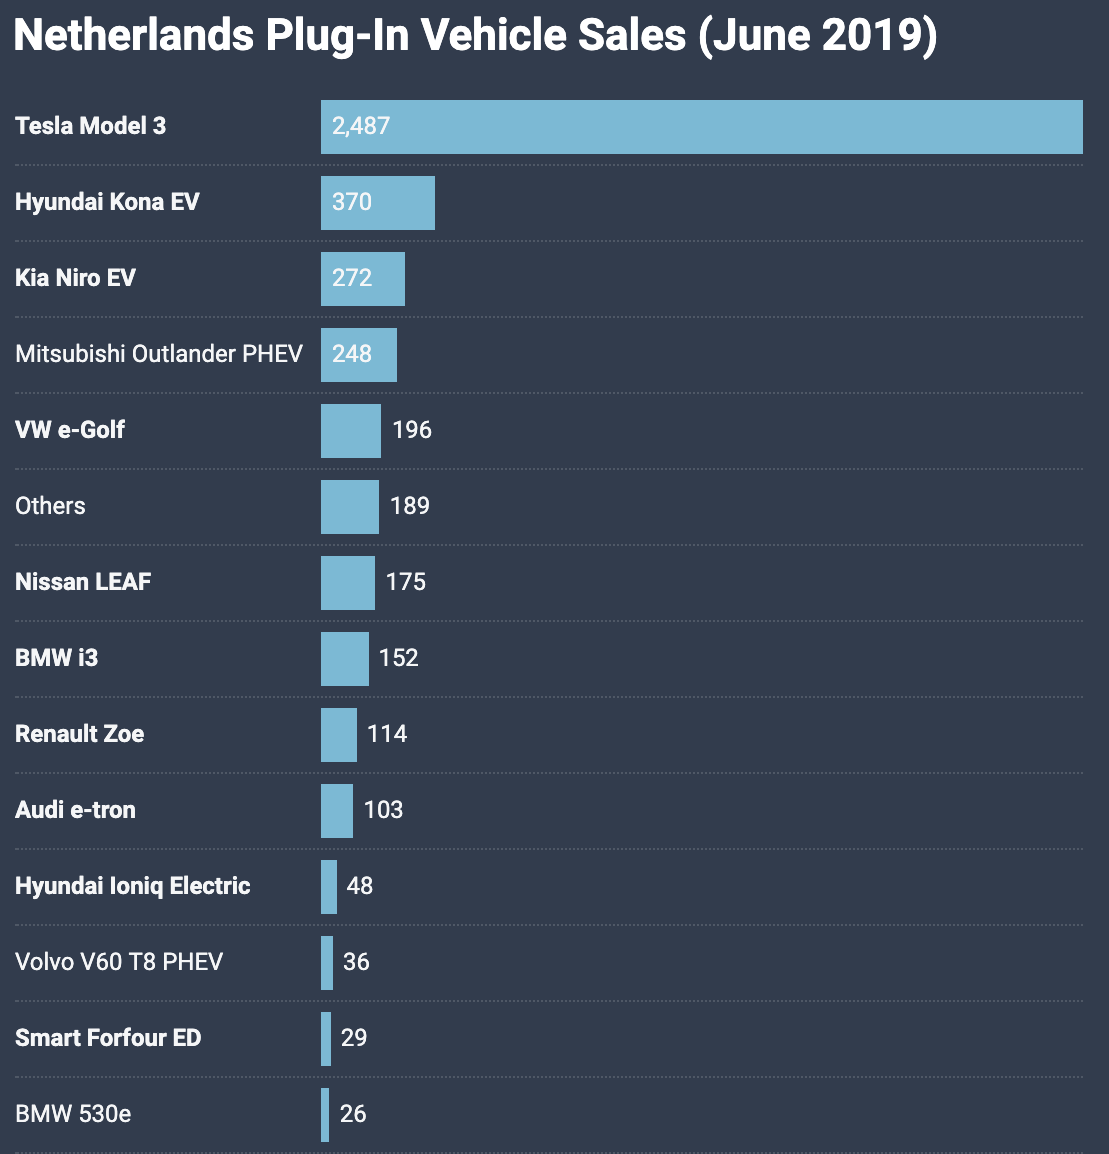 photo of Tesla Model 3 = #1 Best Selling Vehicle In The Netherlands Again (June 2019) image